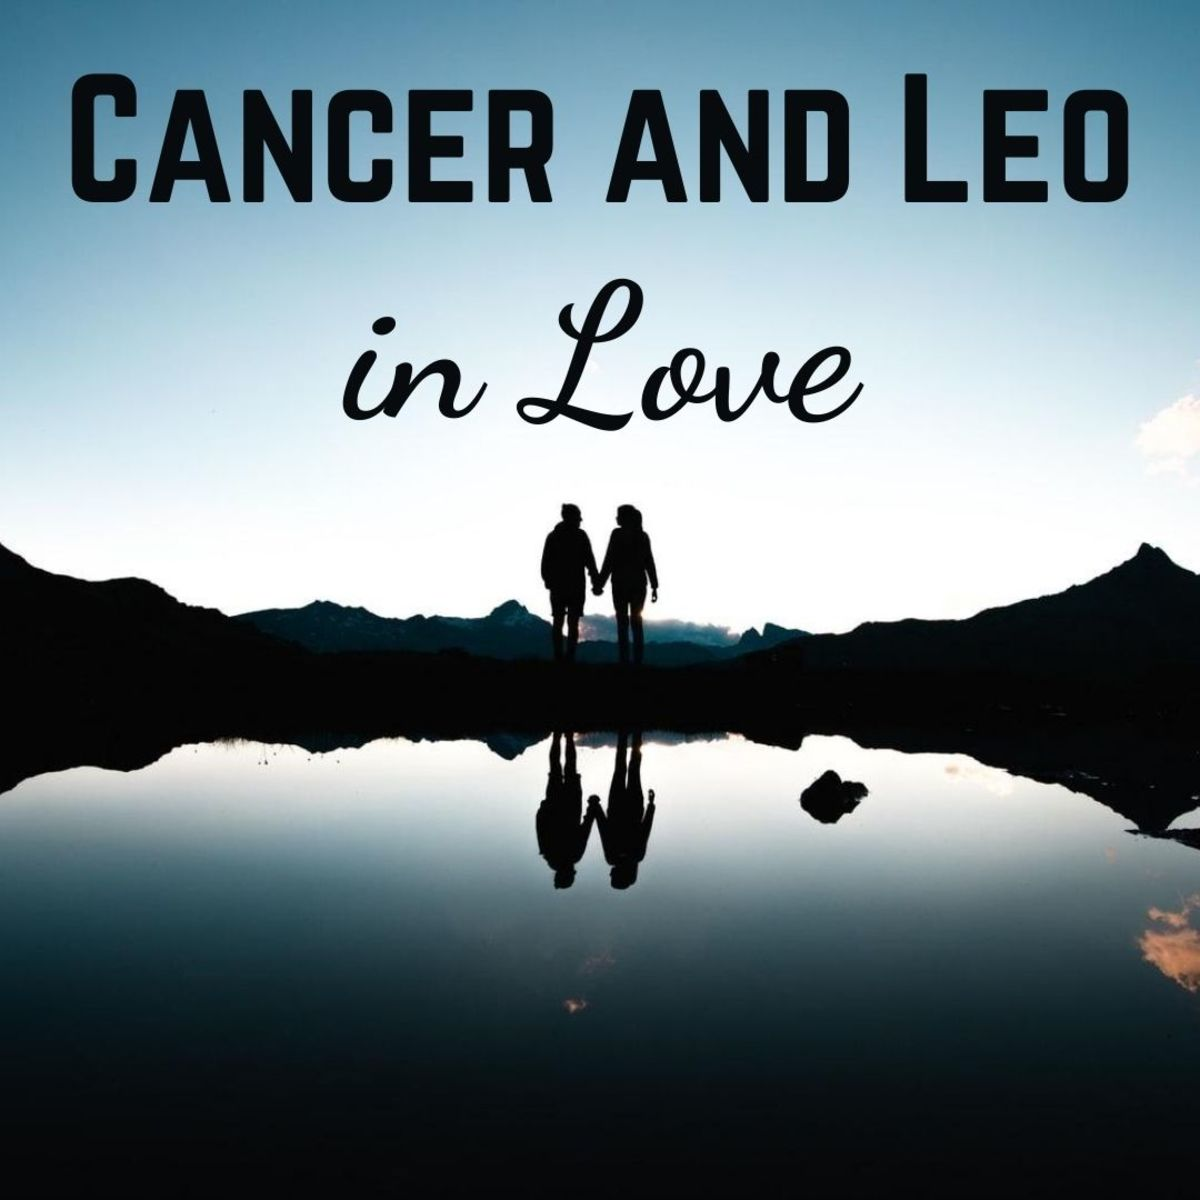 Cancer and Leo Relationship Compatibility ♋️ + ♌️